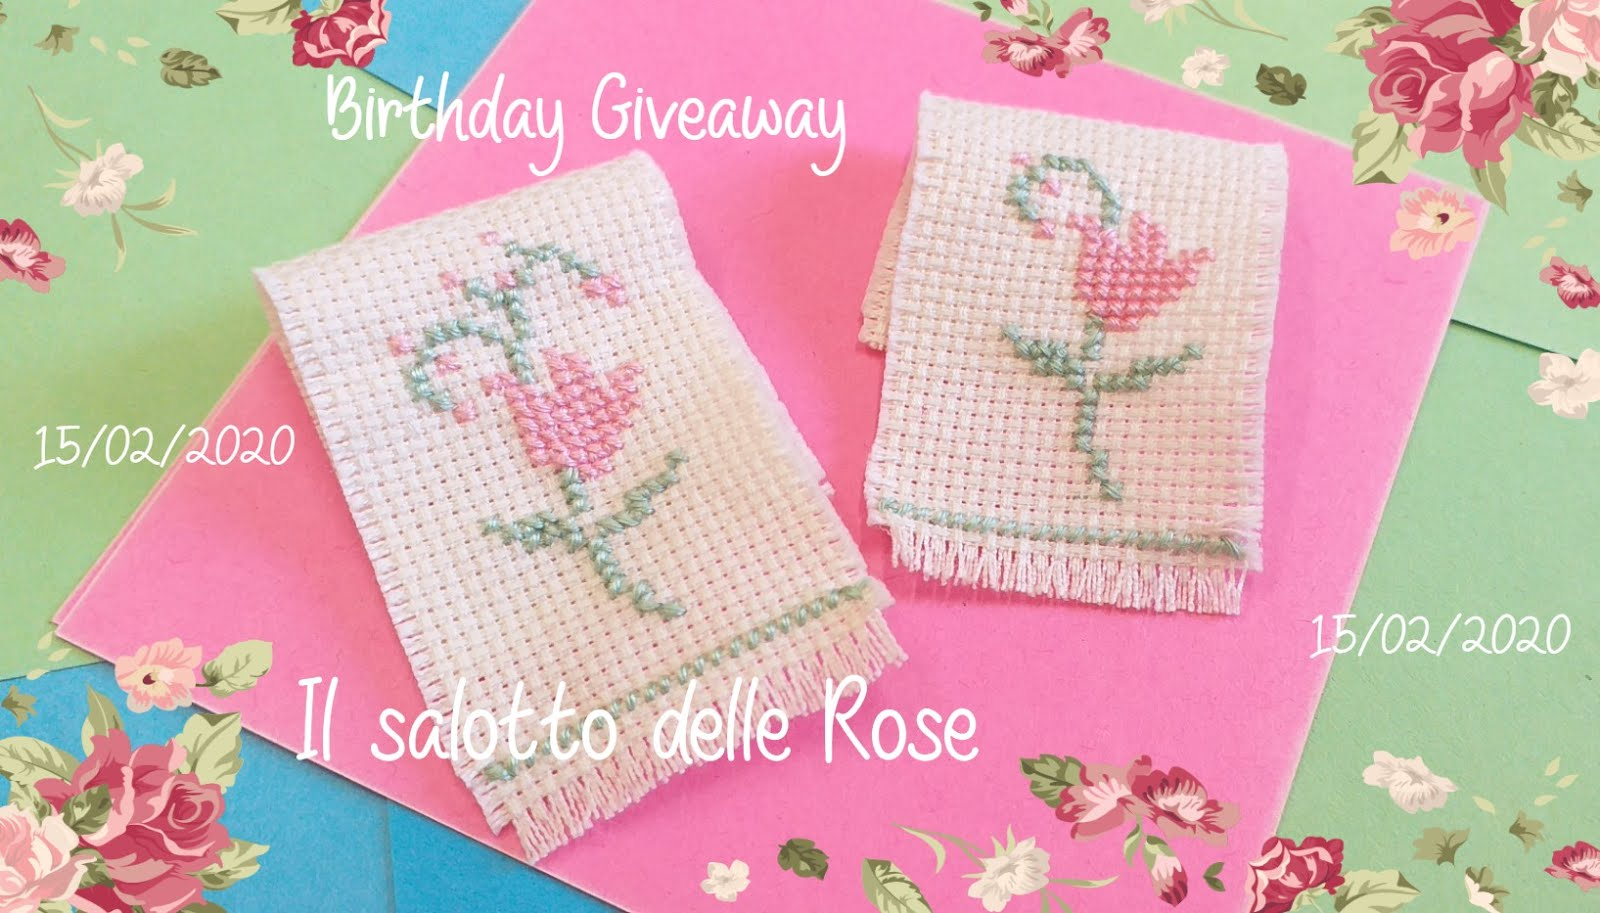 Rosella's Giveaway